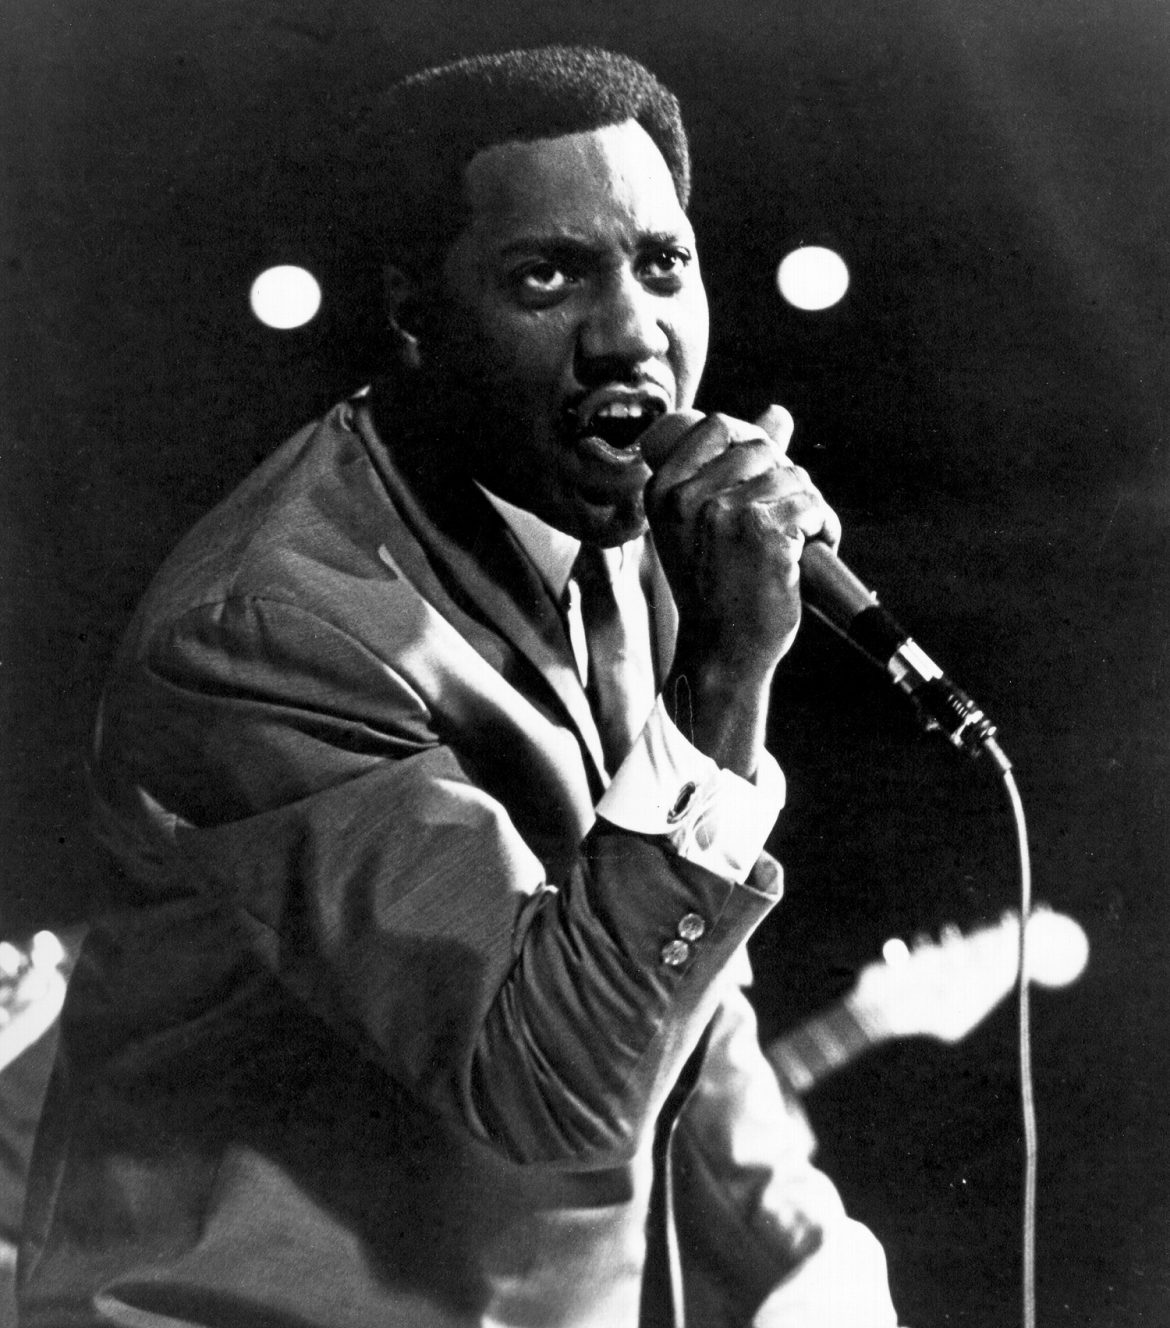 Otis Redding 72 años de Mr. Pitiful sentado al borde de la bahía